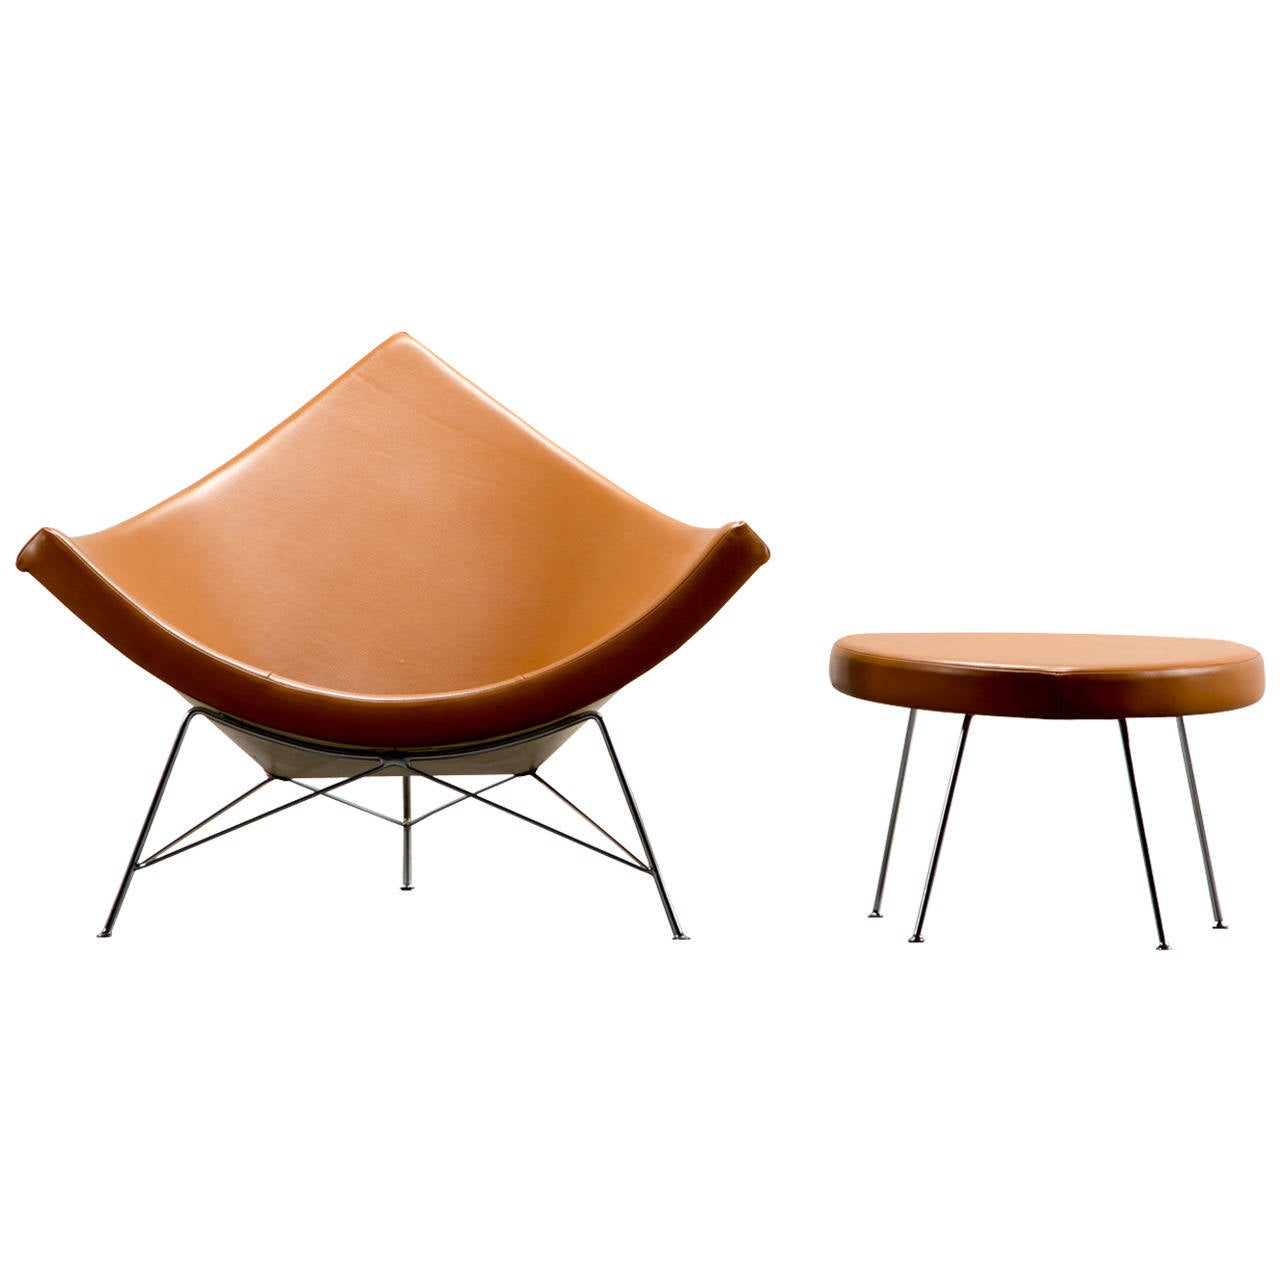 george nelson for herman miller coconut chair and ottoman at 1stdibs